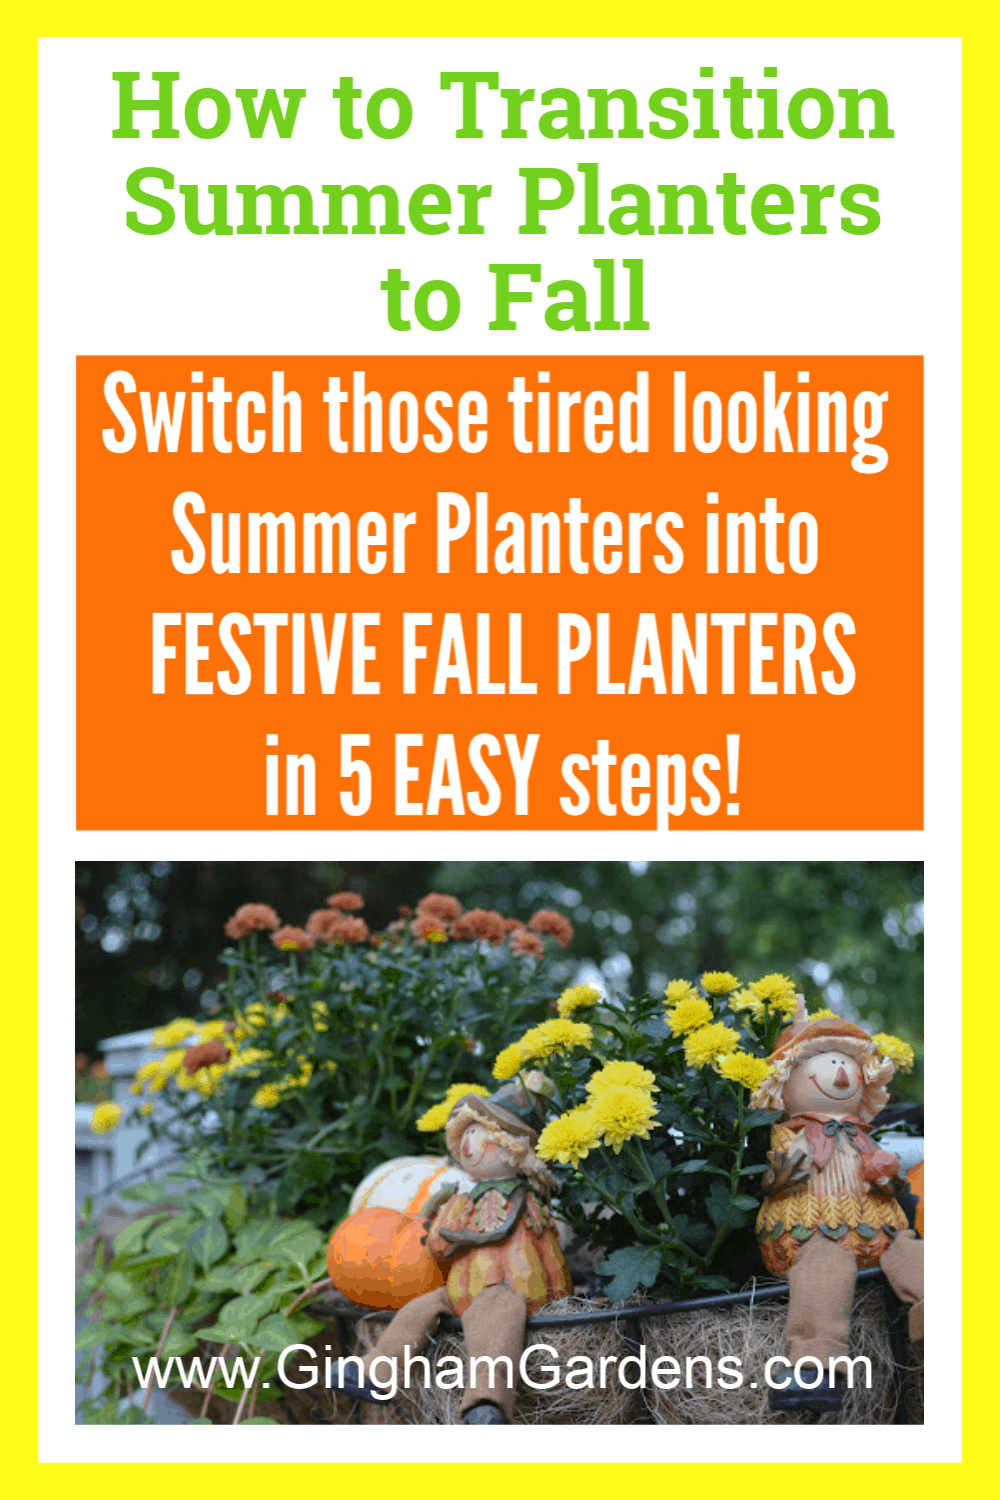 Image of Fall Flower Planter with text overlay - How to Transition summer planters to fall